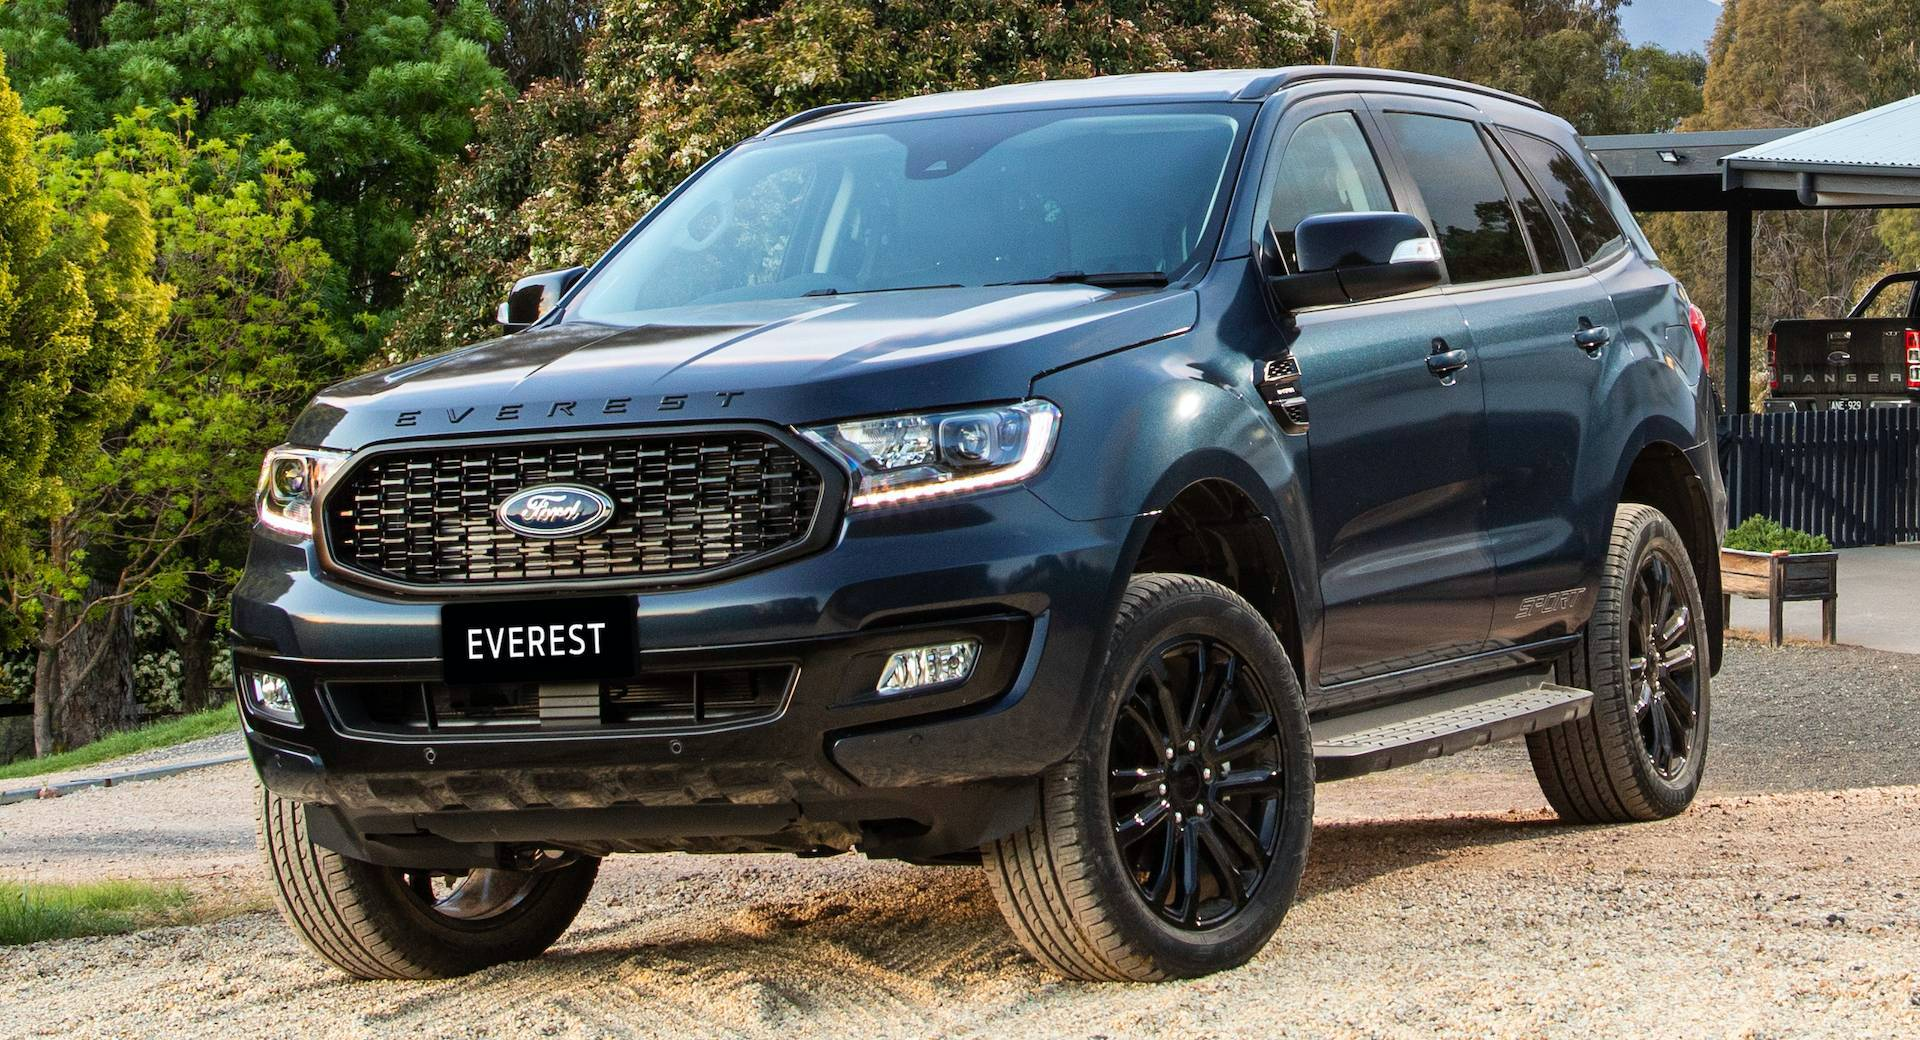 2020 Ford Everest Images